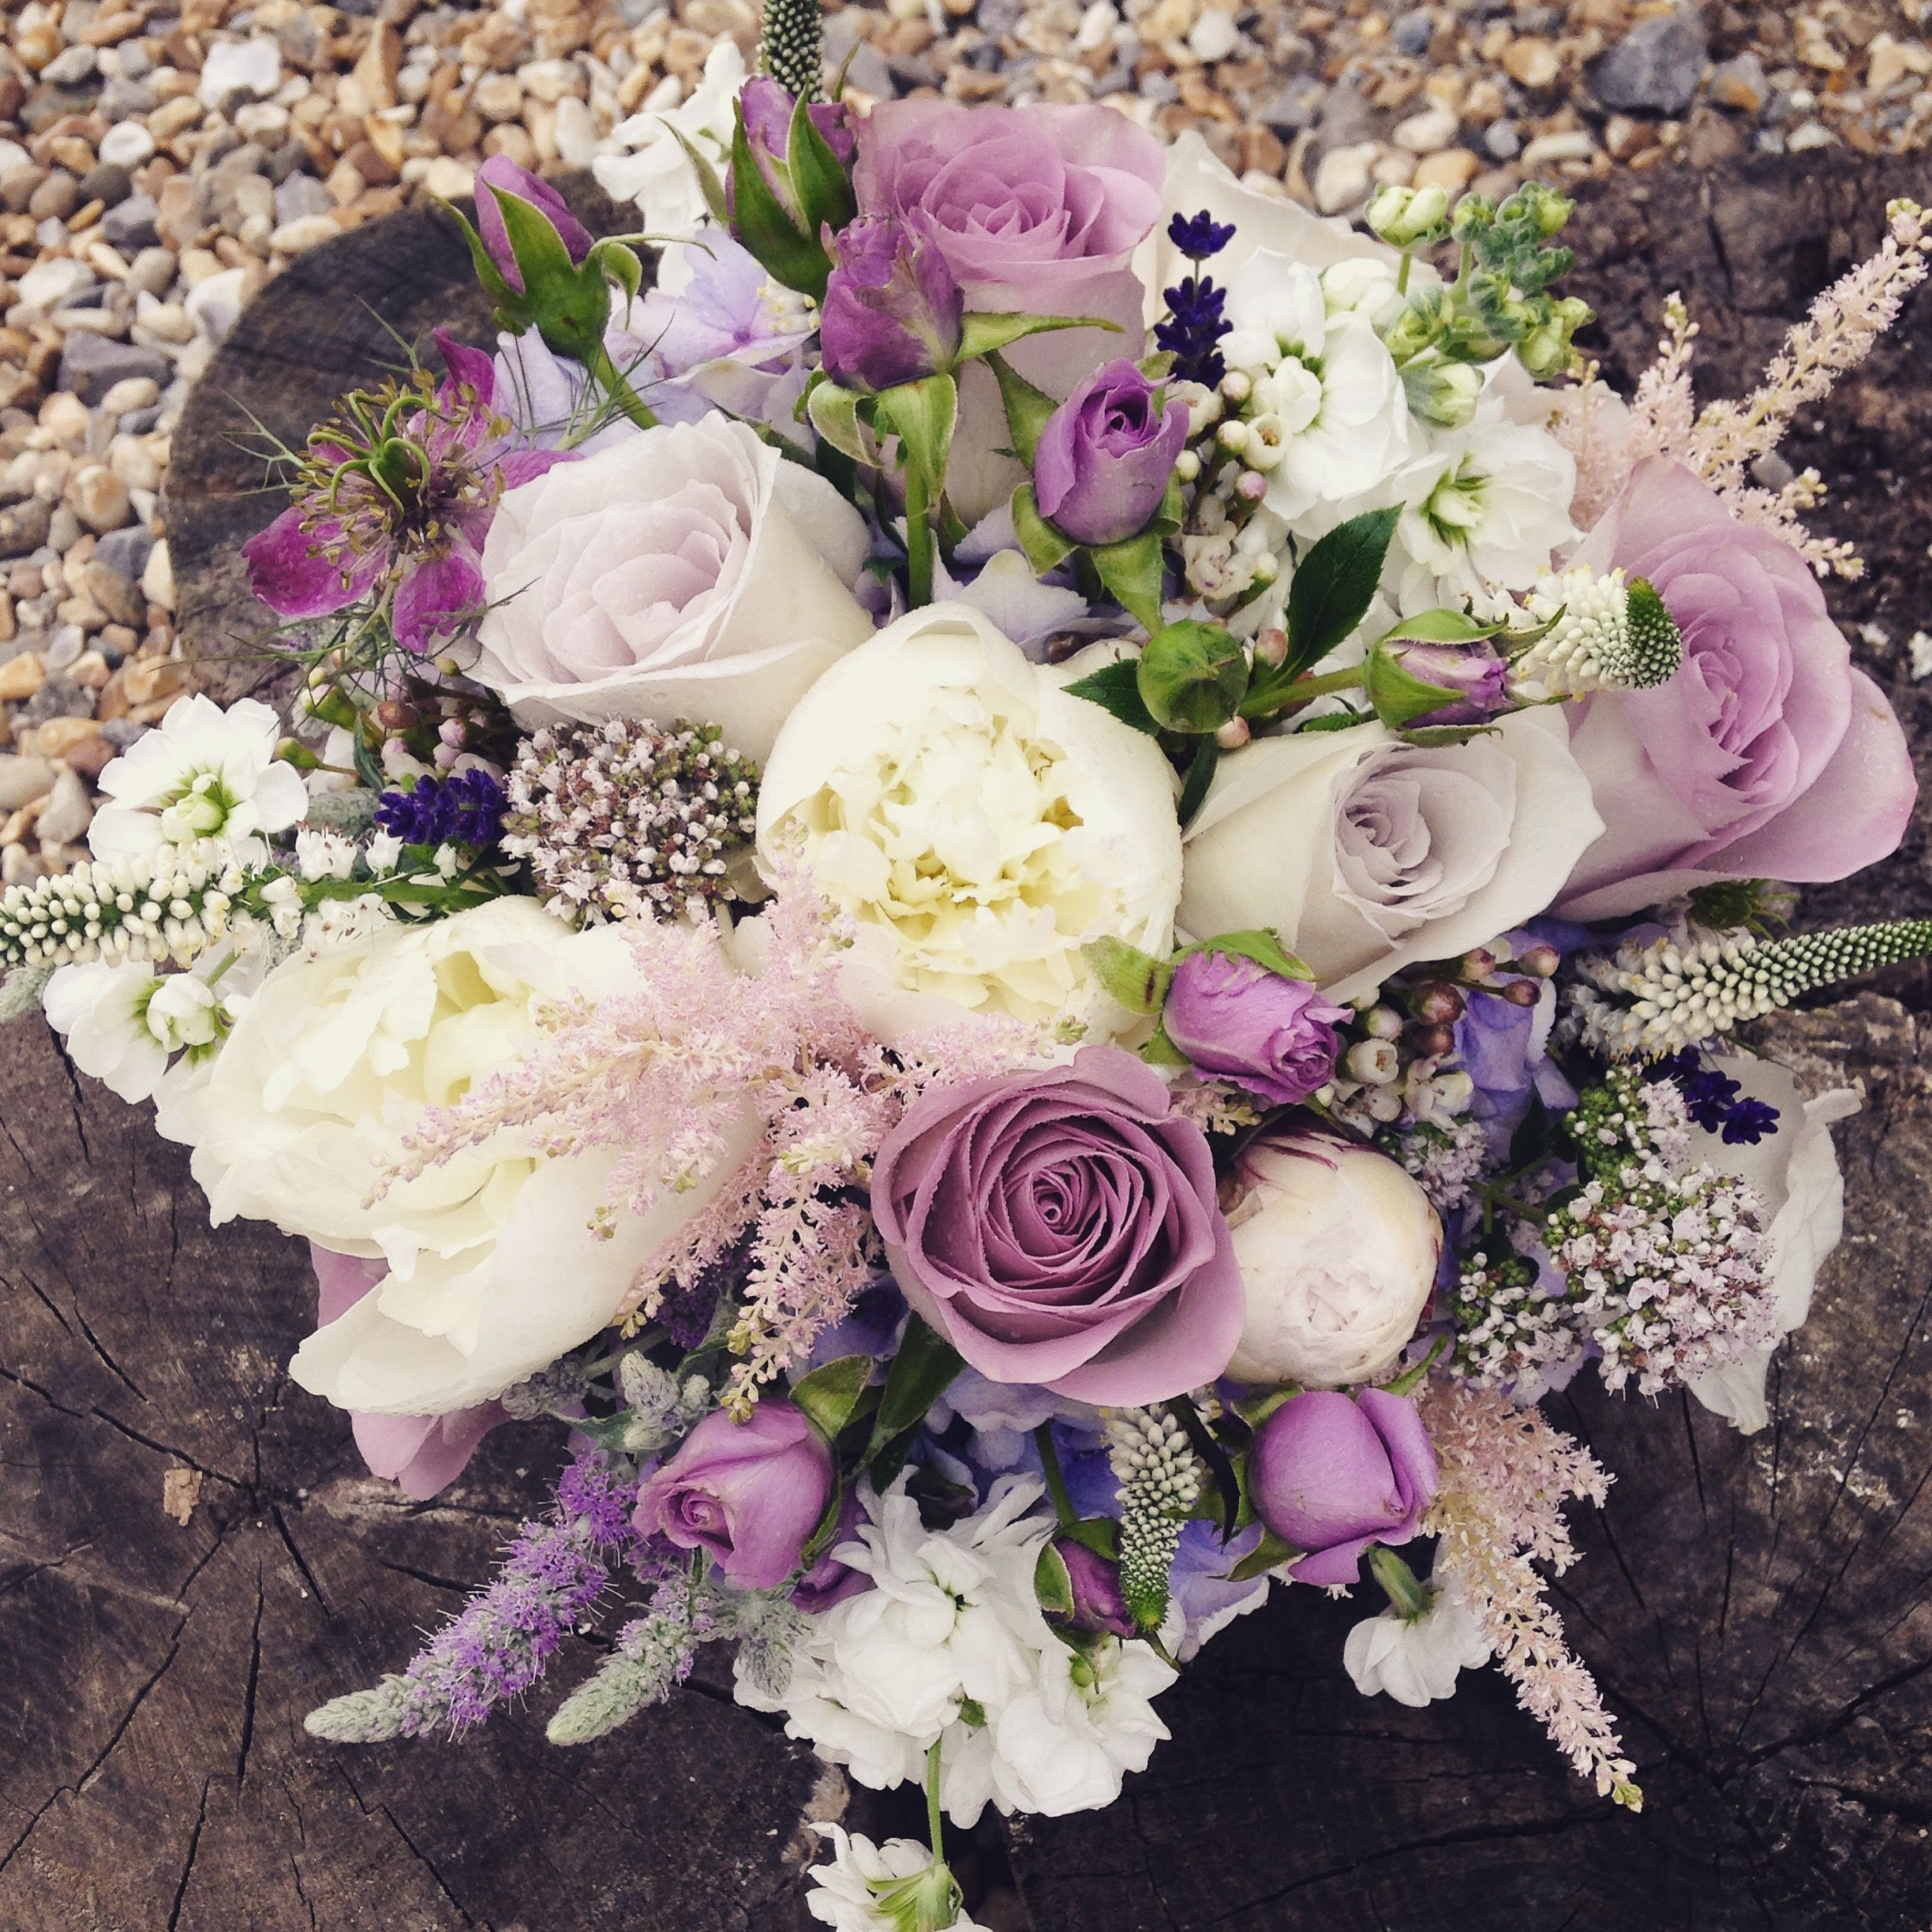 Bridal bouquet of cream peonies, lavender roses, lavender, oregano and astilbe. www.rose-cottage-flowers.co.uk #astilbebouquet Bridal bouquet of cream peonies, lavender roses, lavender, oregano and astilbe. www.rose-cottage-flowers.co.uk